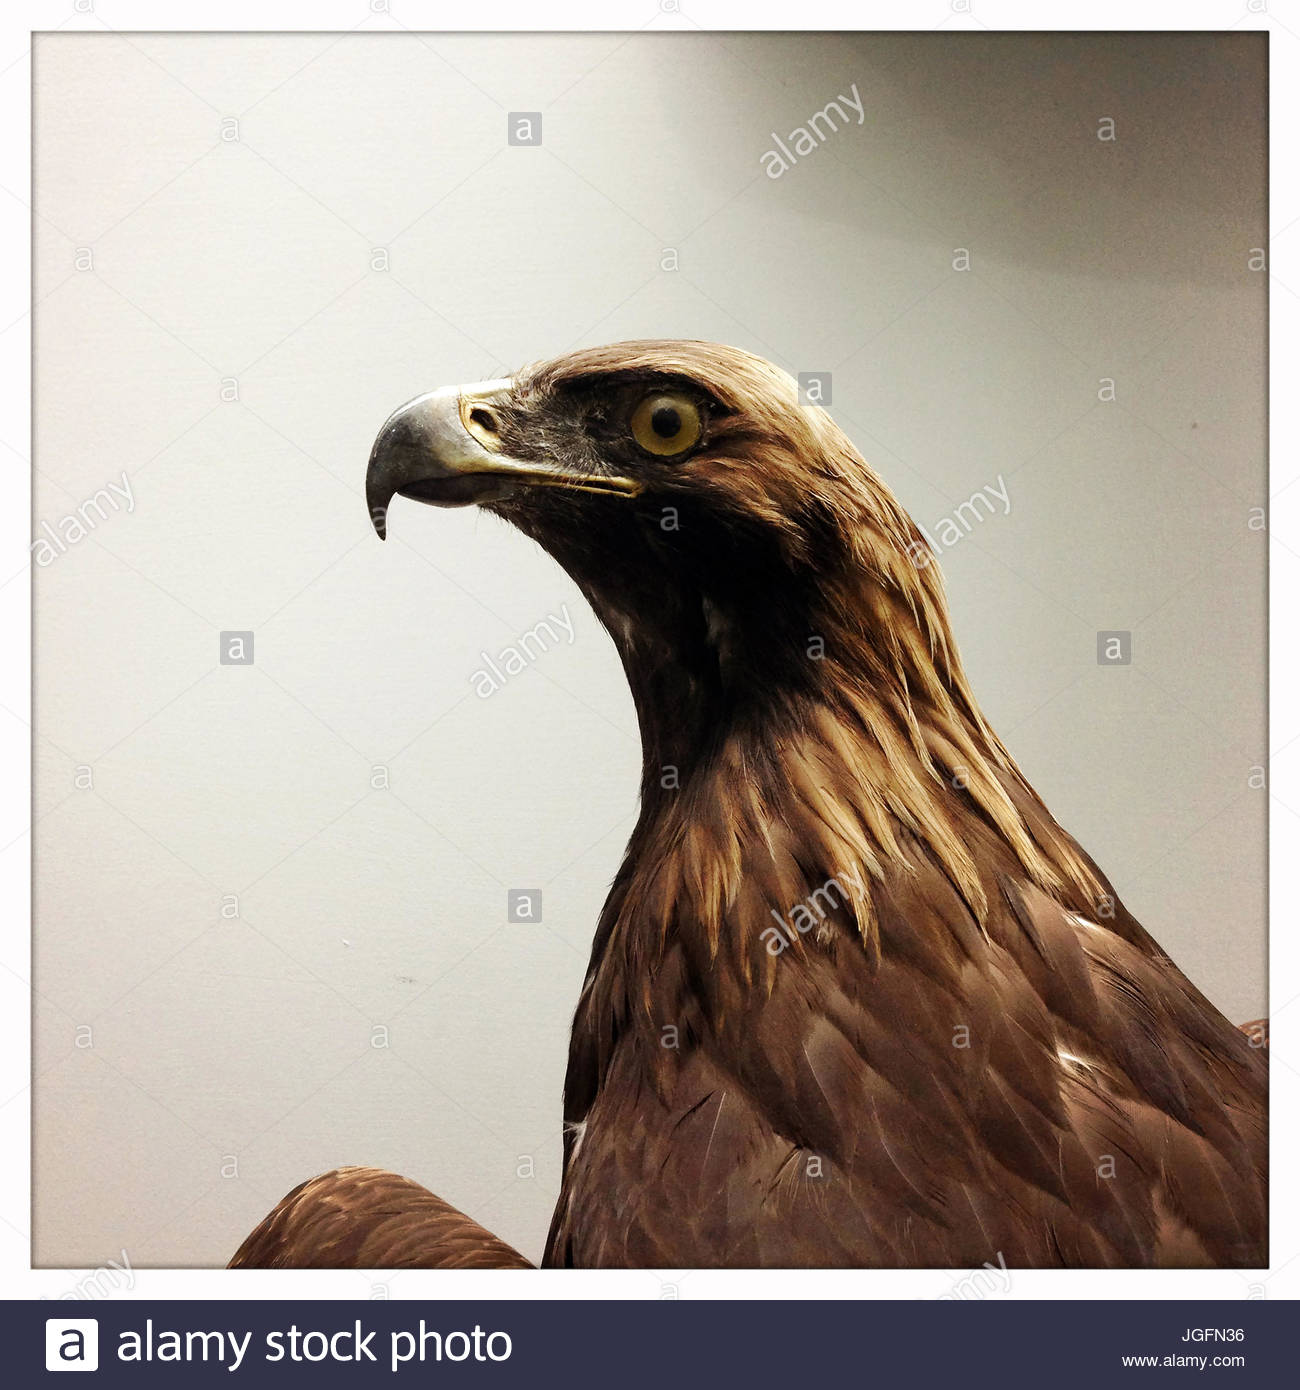 A stuffed eagle on display in the Natural History Museum in Beijing, China. Stock Photo